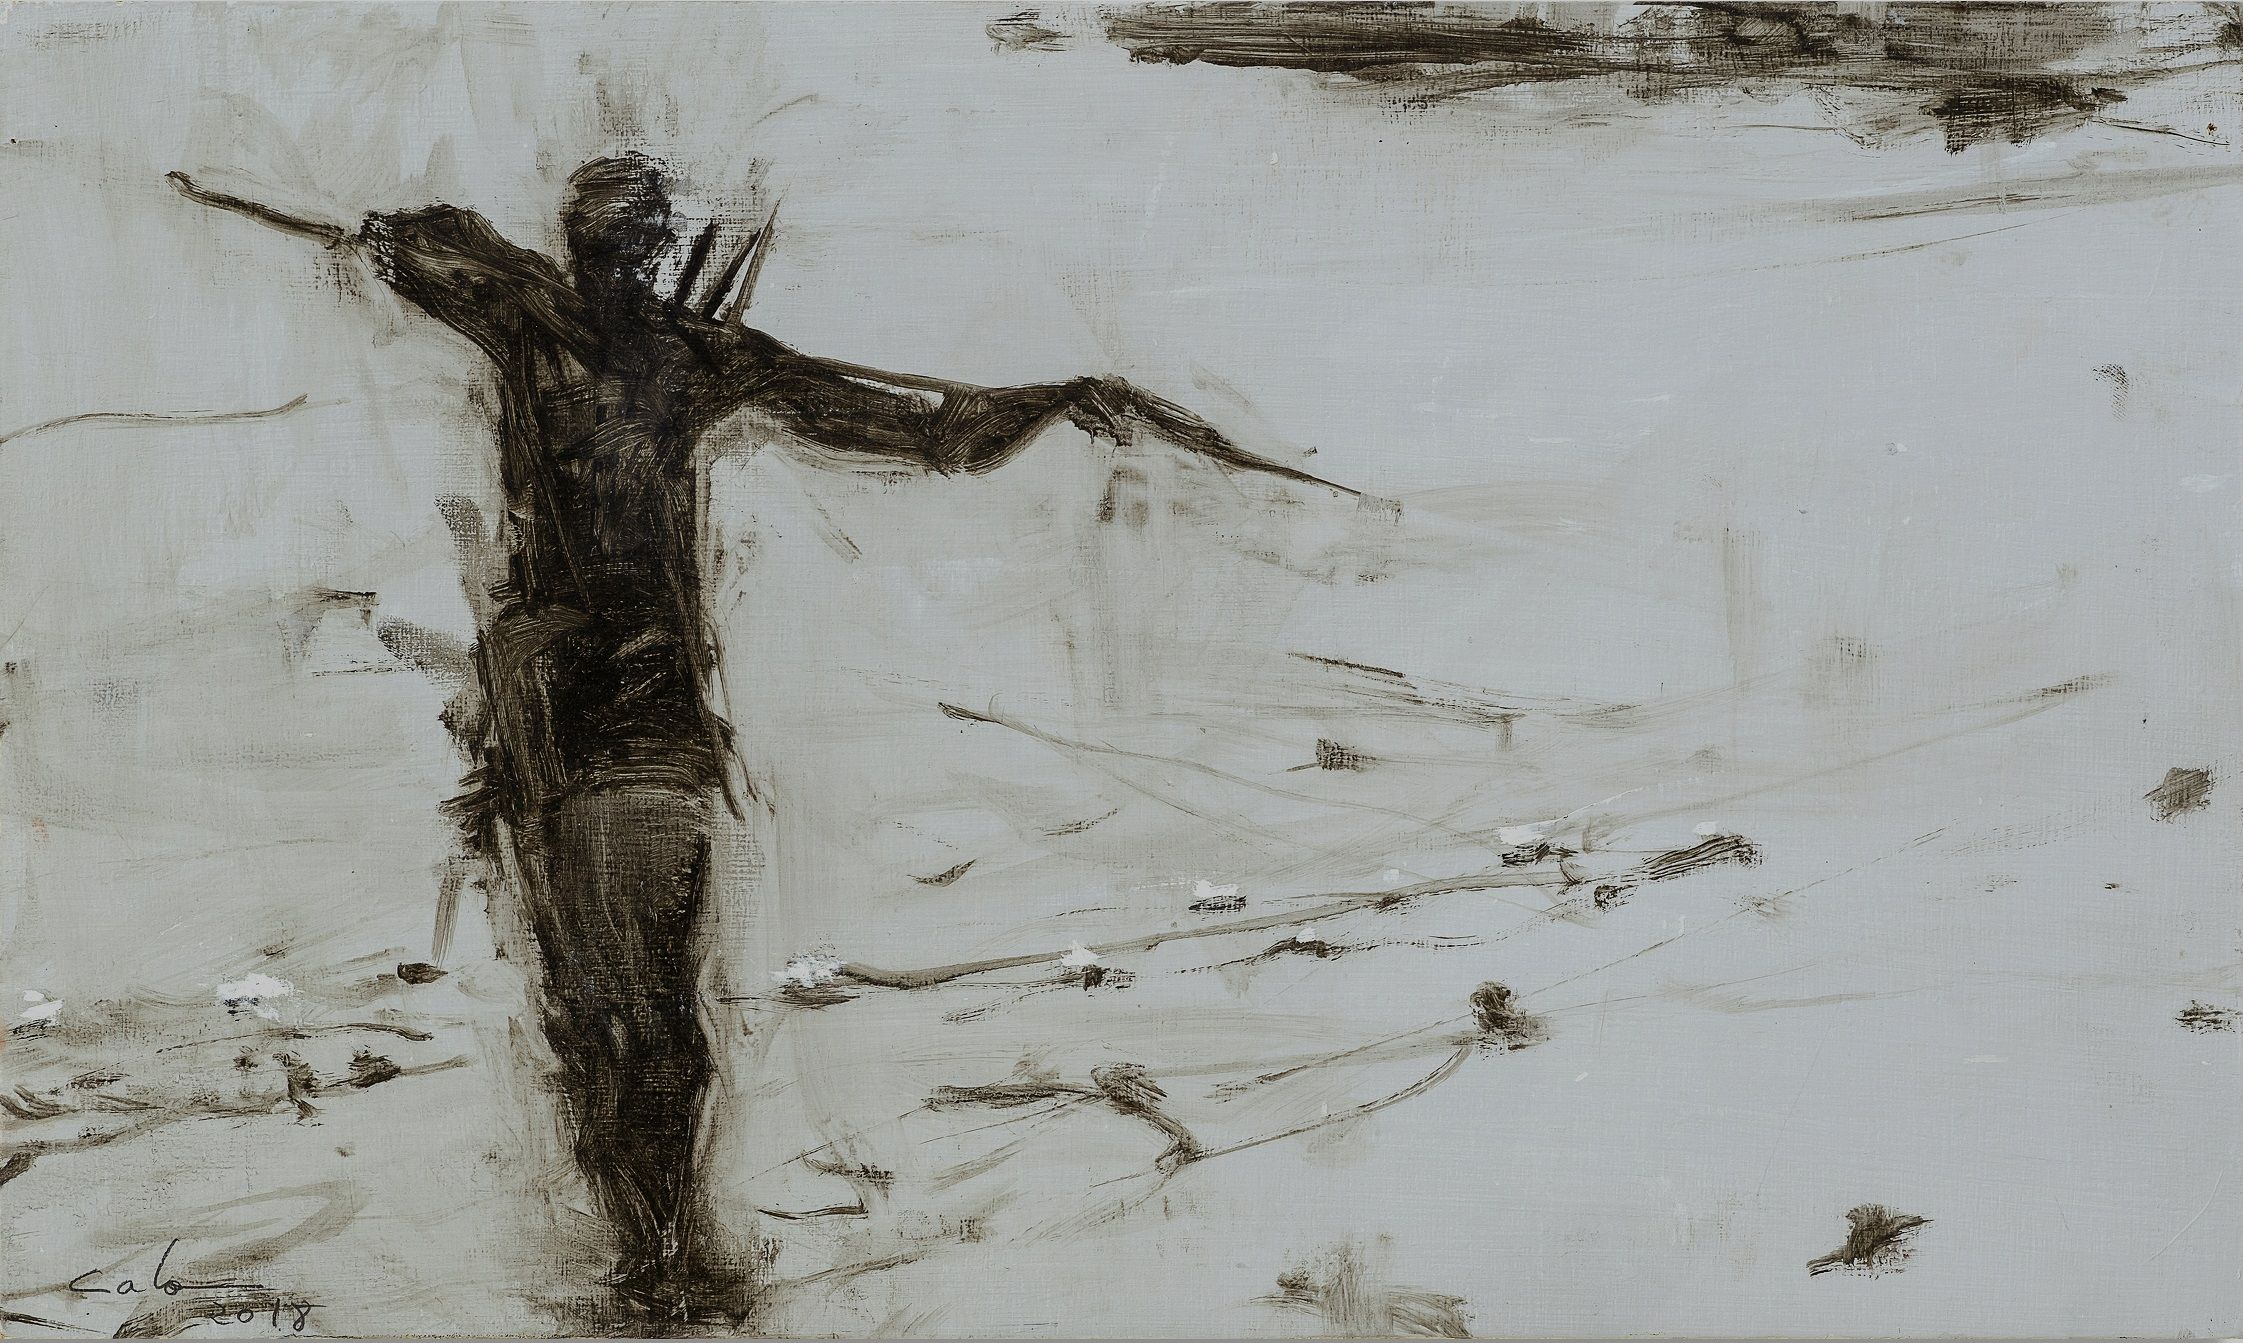 Pescador de tabla V, Tanzania series,Calo  Carratalá,Painting